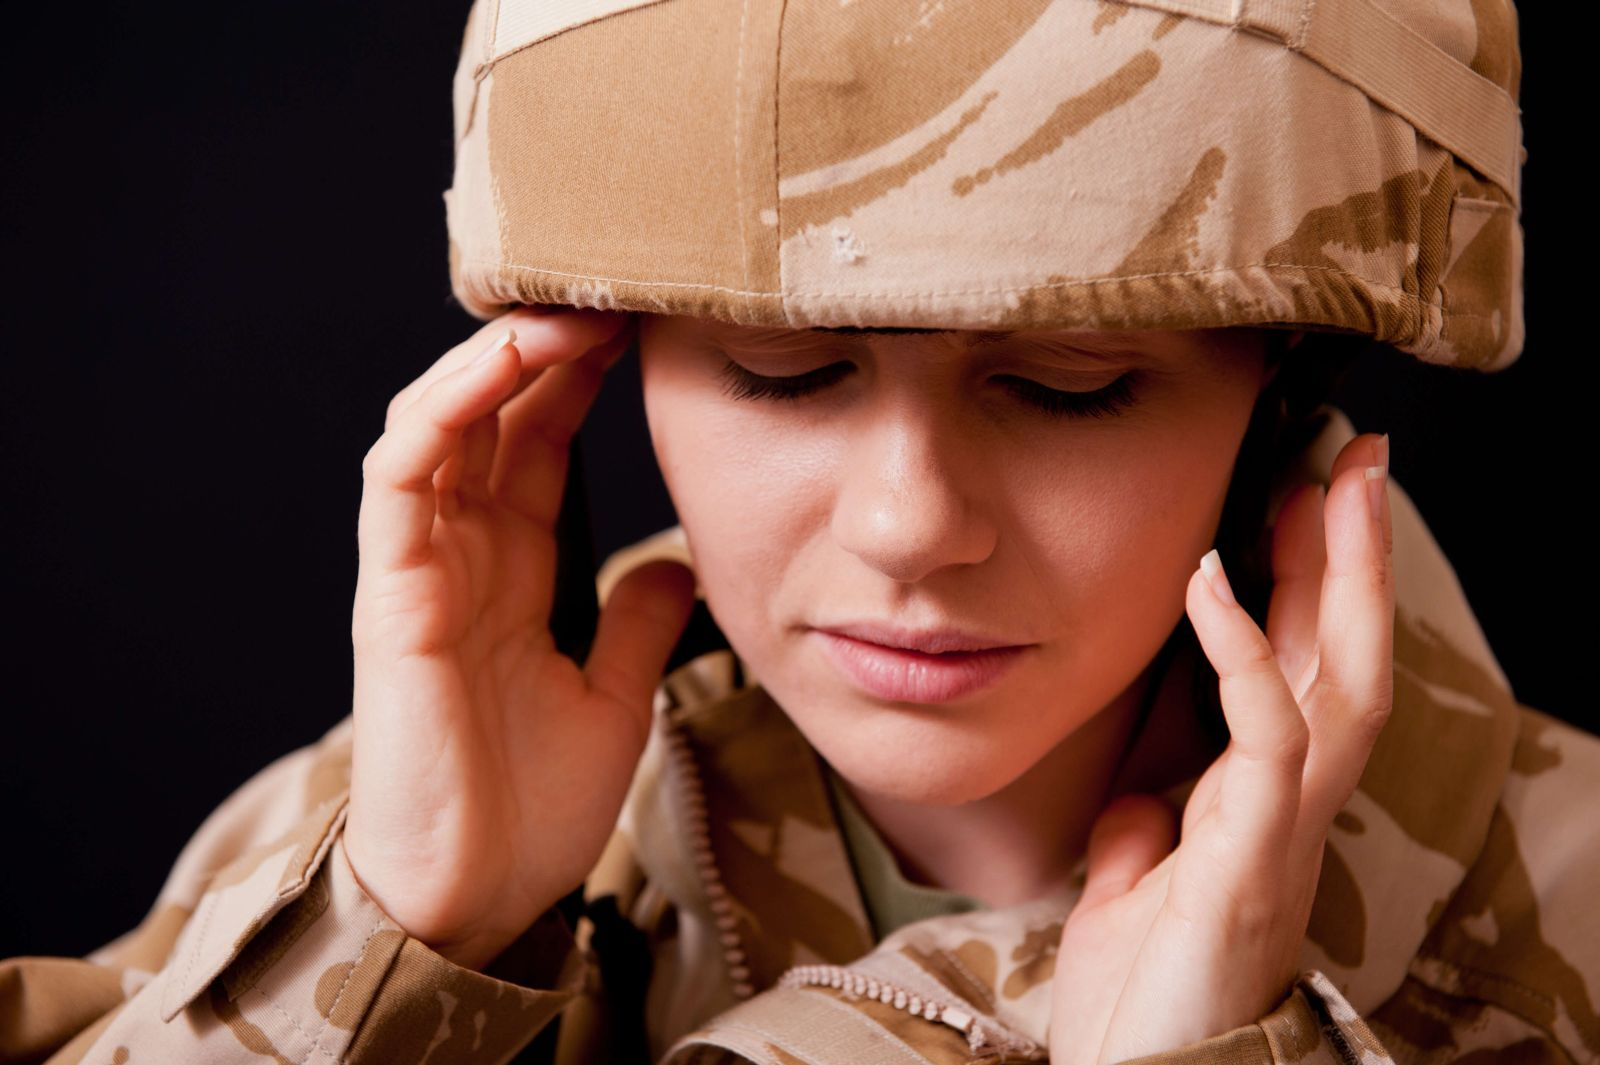 Defective Dual-Ended Combat Arms Earplugs Caused Hearing Loss and Tinnitus in Service Men and Women